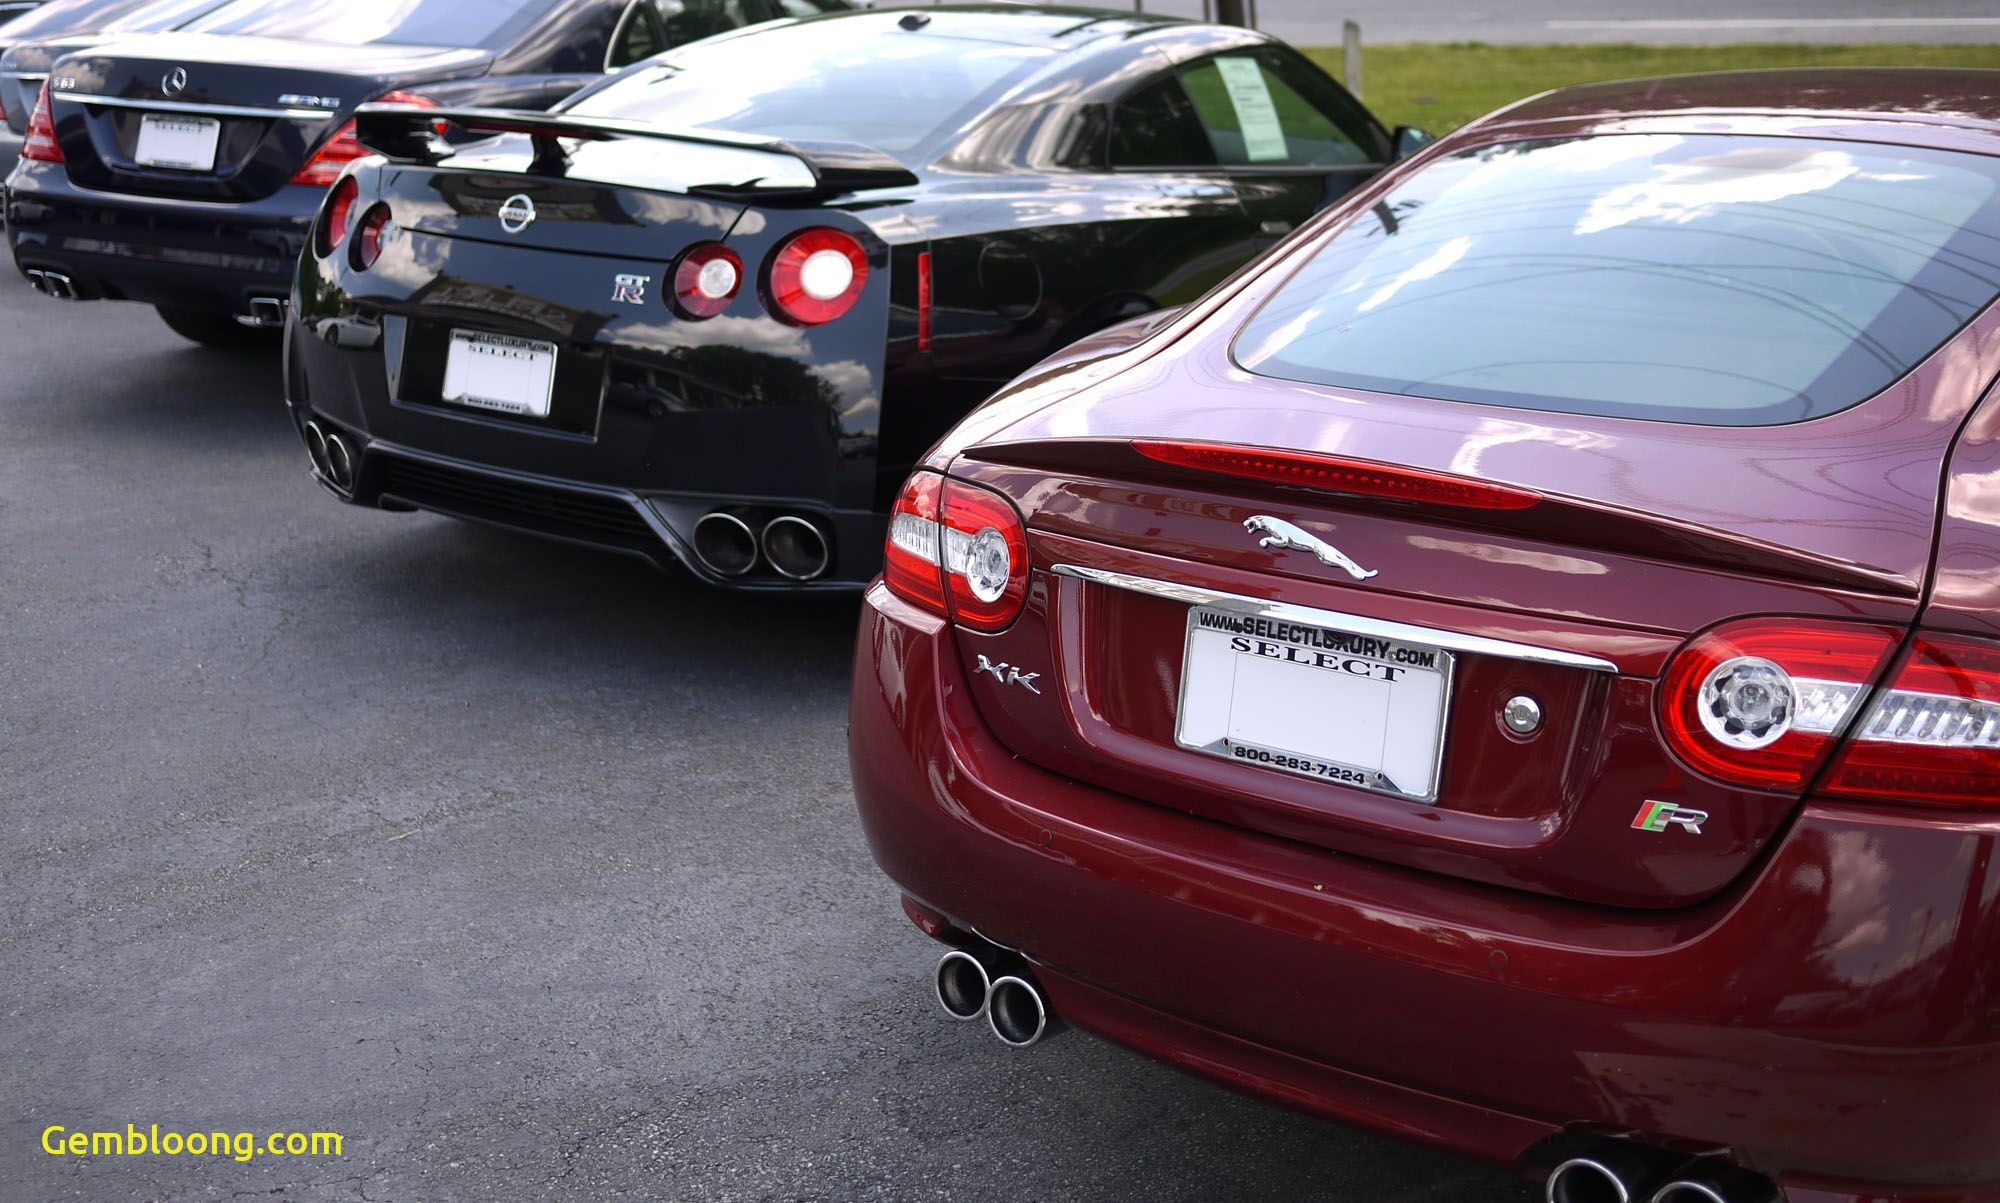 Select Motors Awesome Select Luxury Cars About Our Marietta Ga Dealership